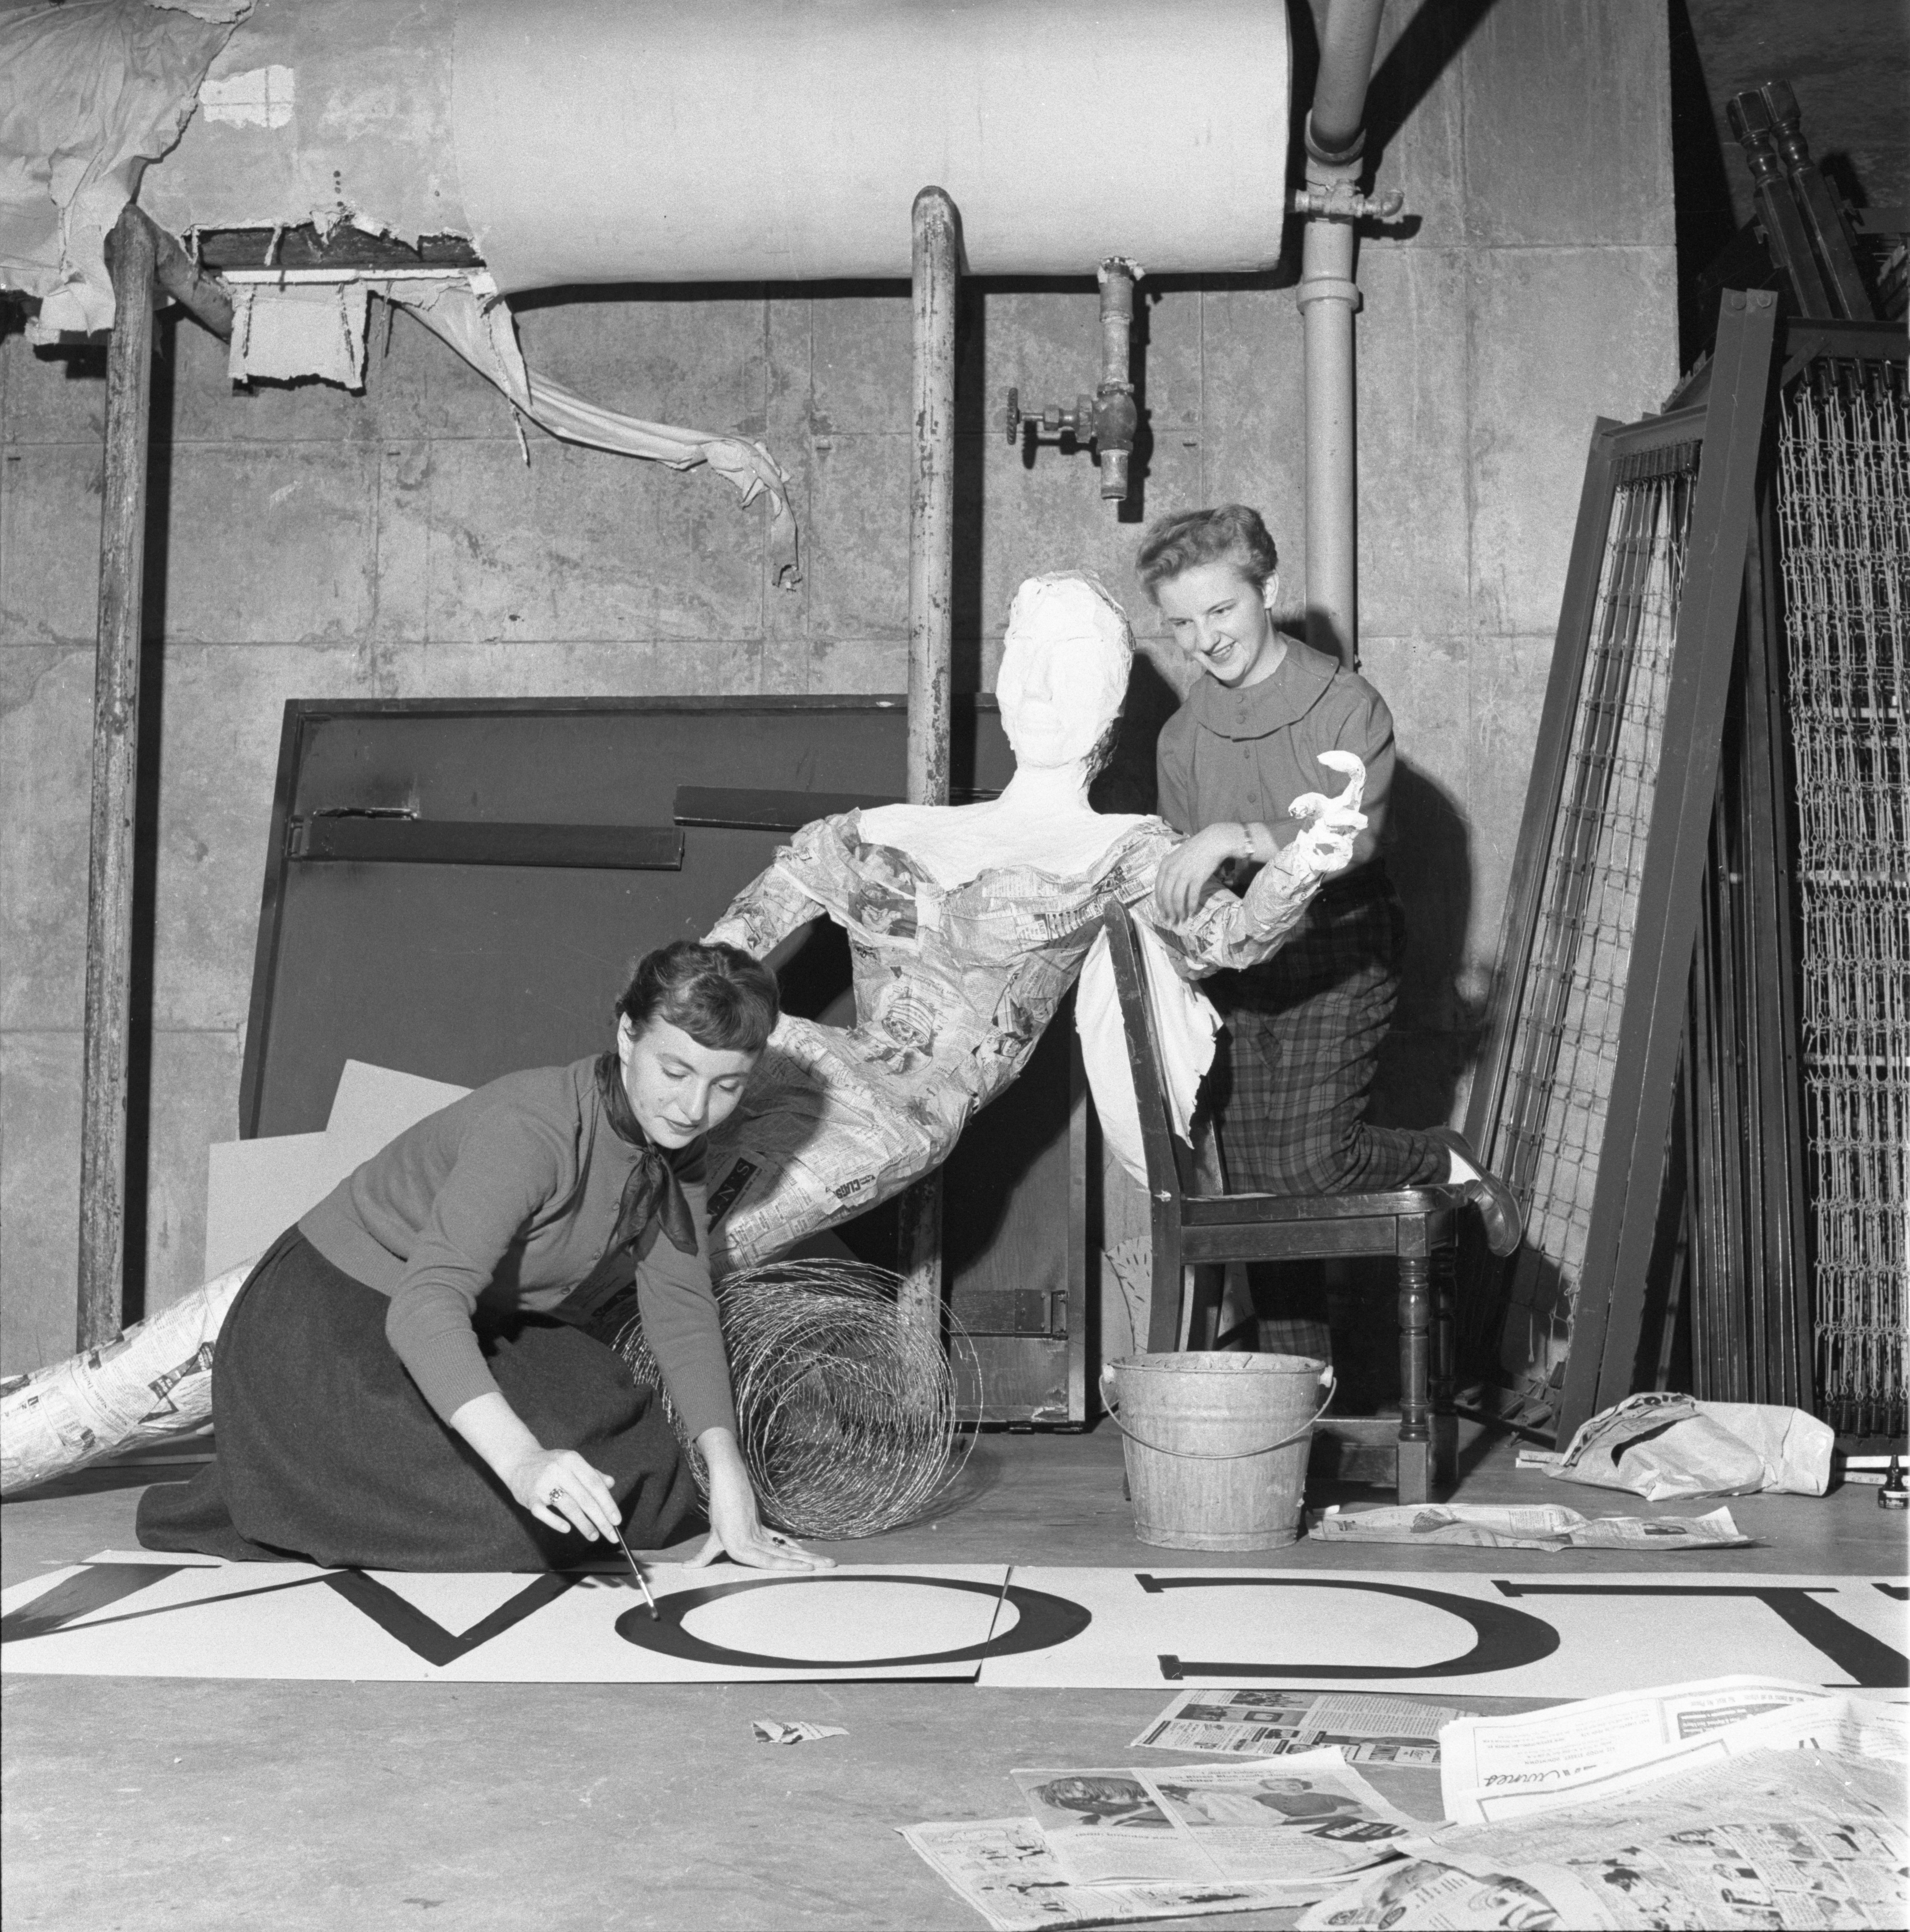 Residents Of Victor Vaughan Residence Hall Construct Their Homecoming Display, October 1955 image